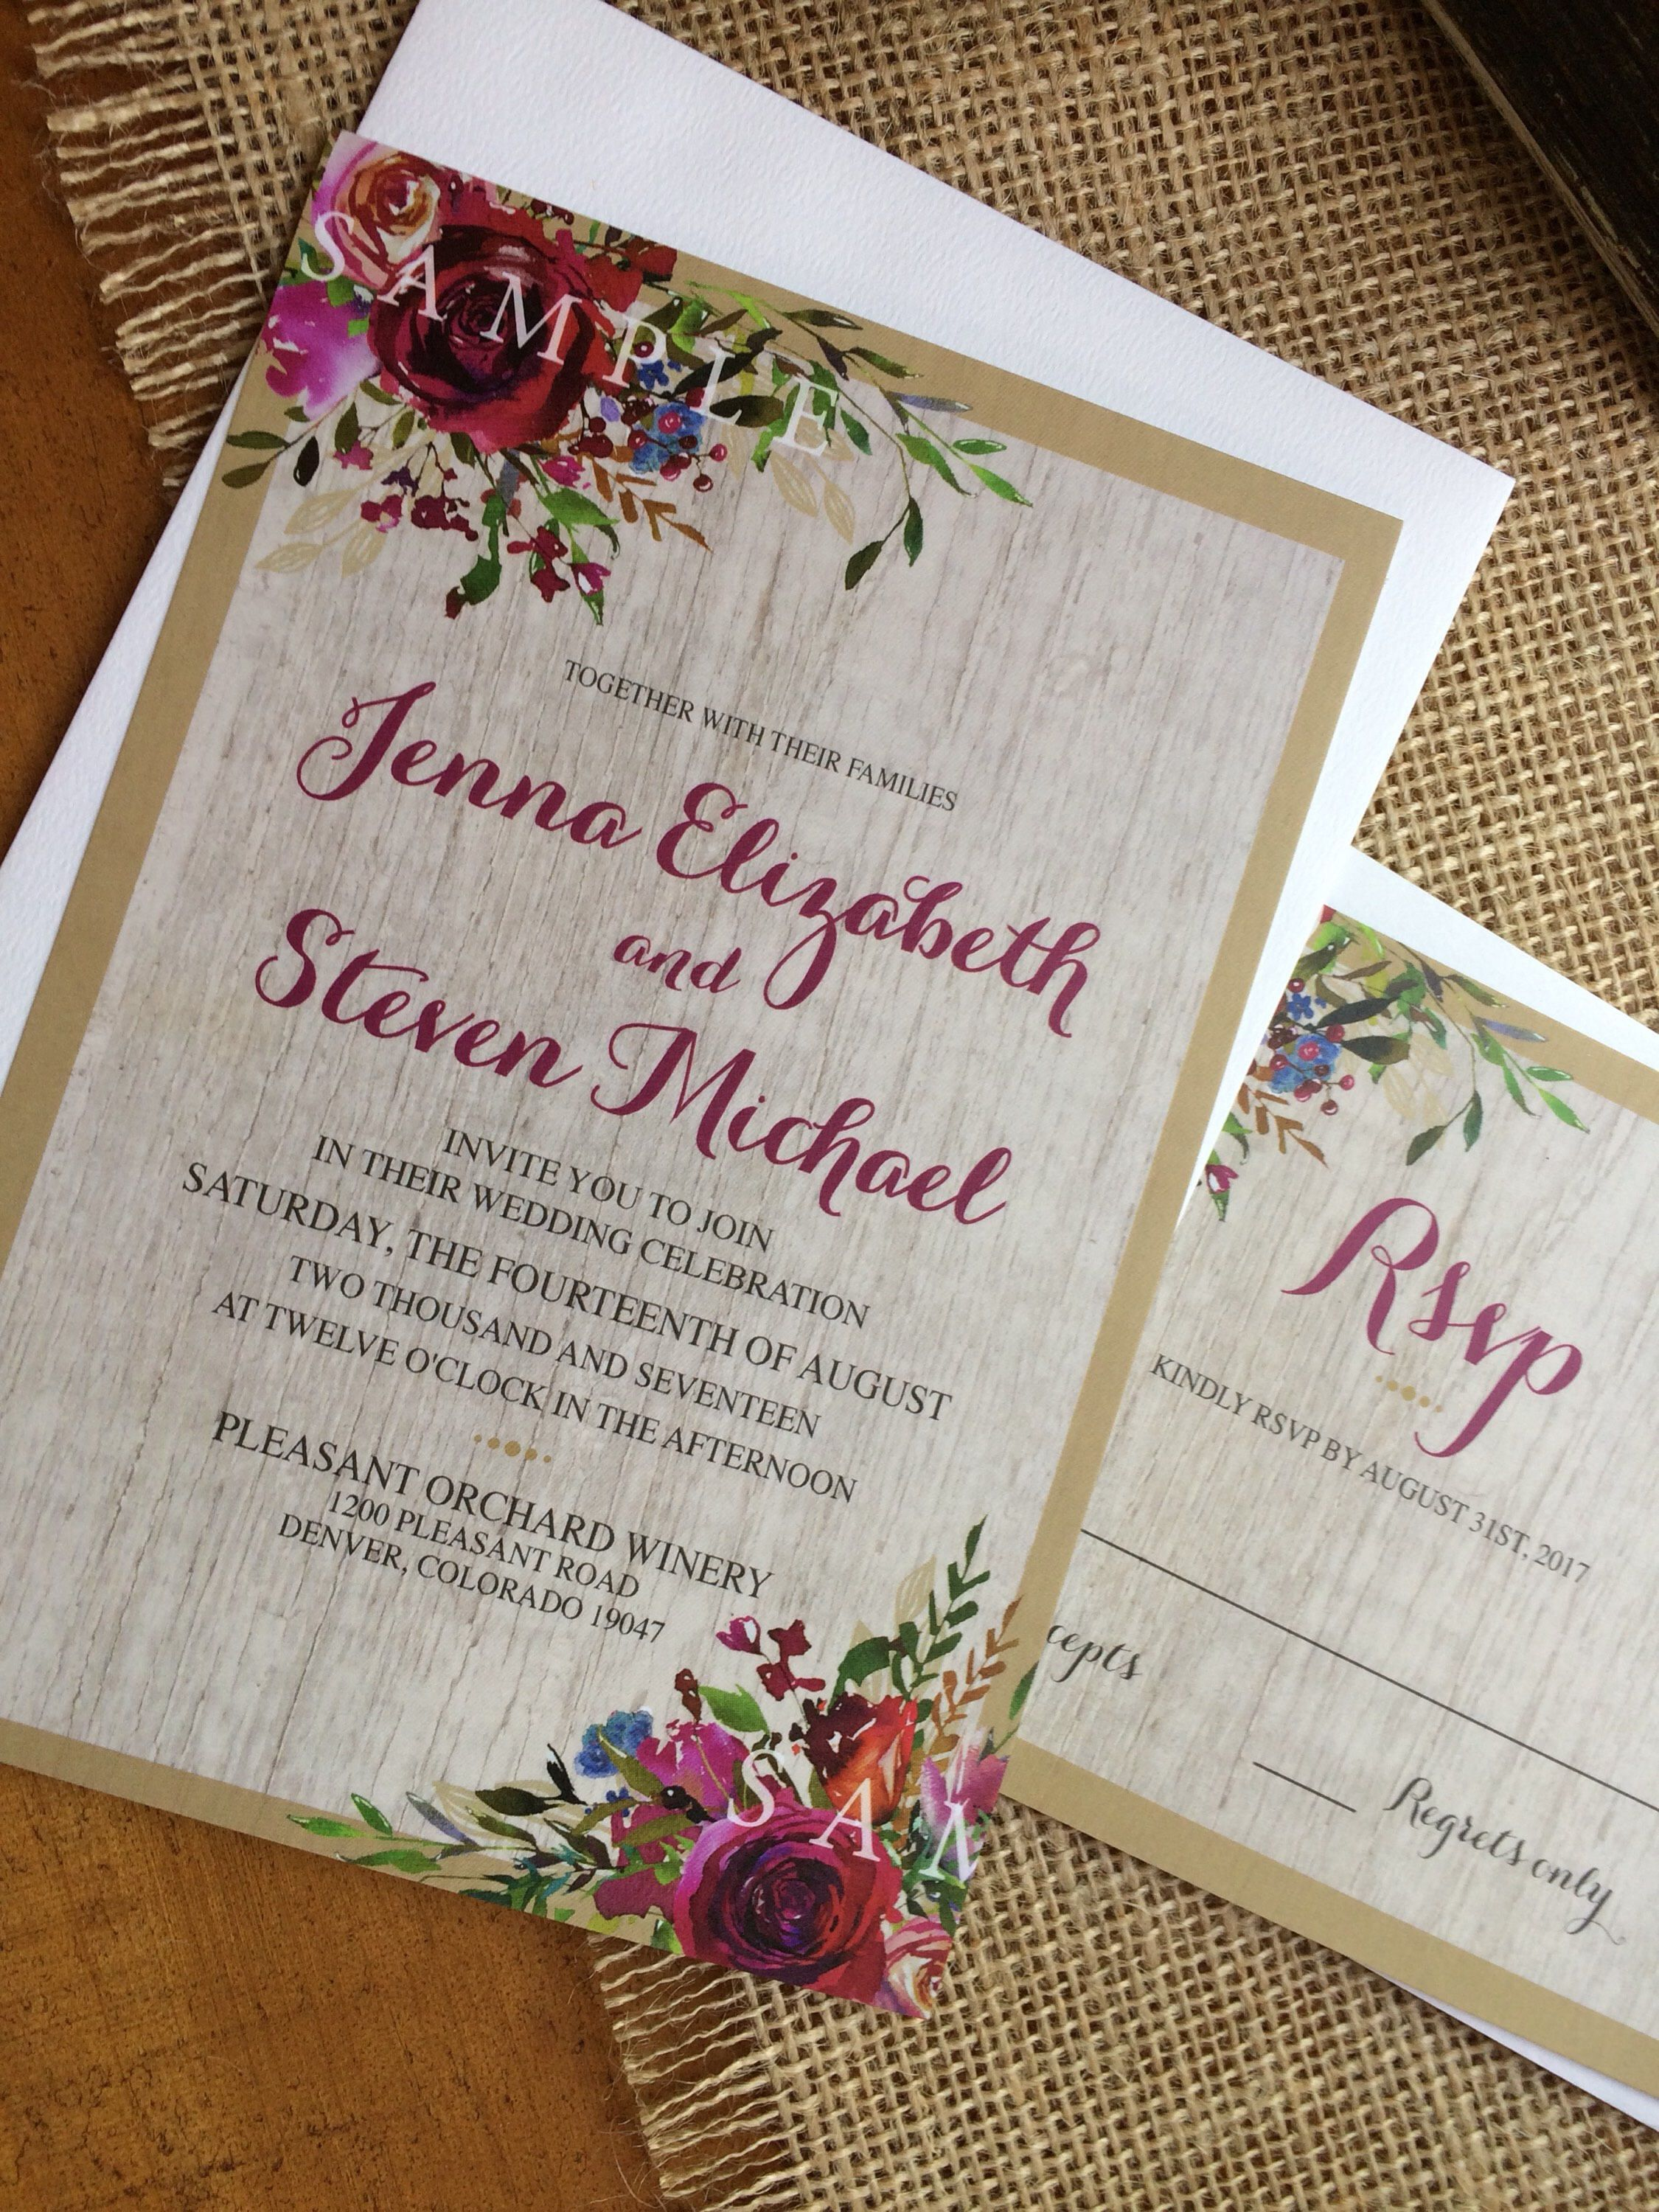 tie the knot wedding invitations etsy%0A Wedding Invitations Invites RSVP Cards Postcards Vintage Rustic Country  Floral Peony Rose Blush Maroon Burgundy Navy Peach Pink Gold